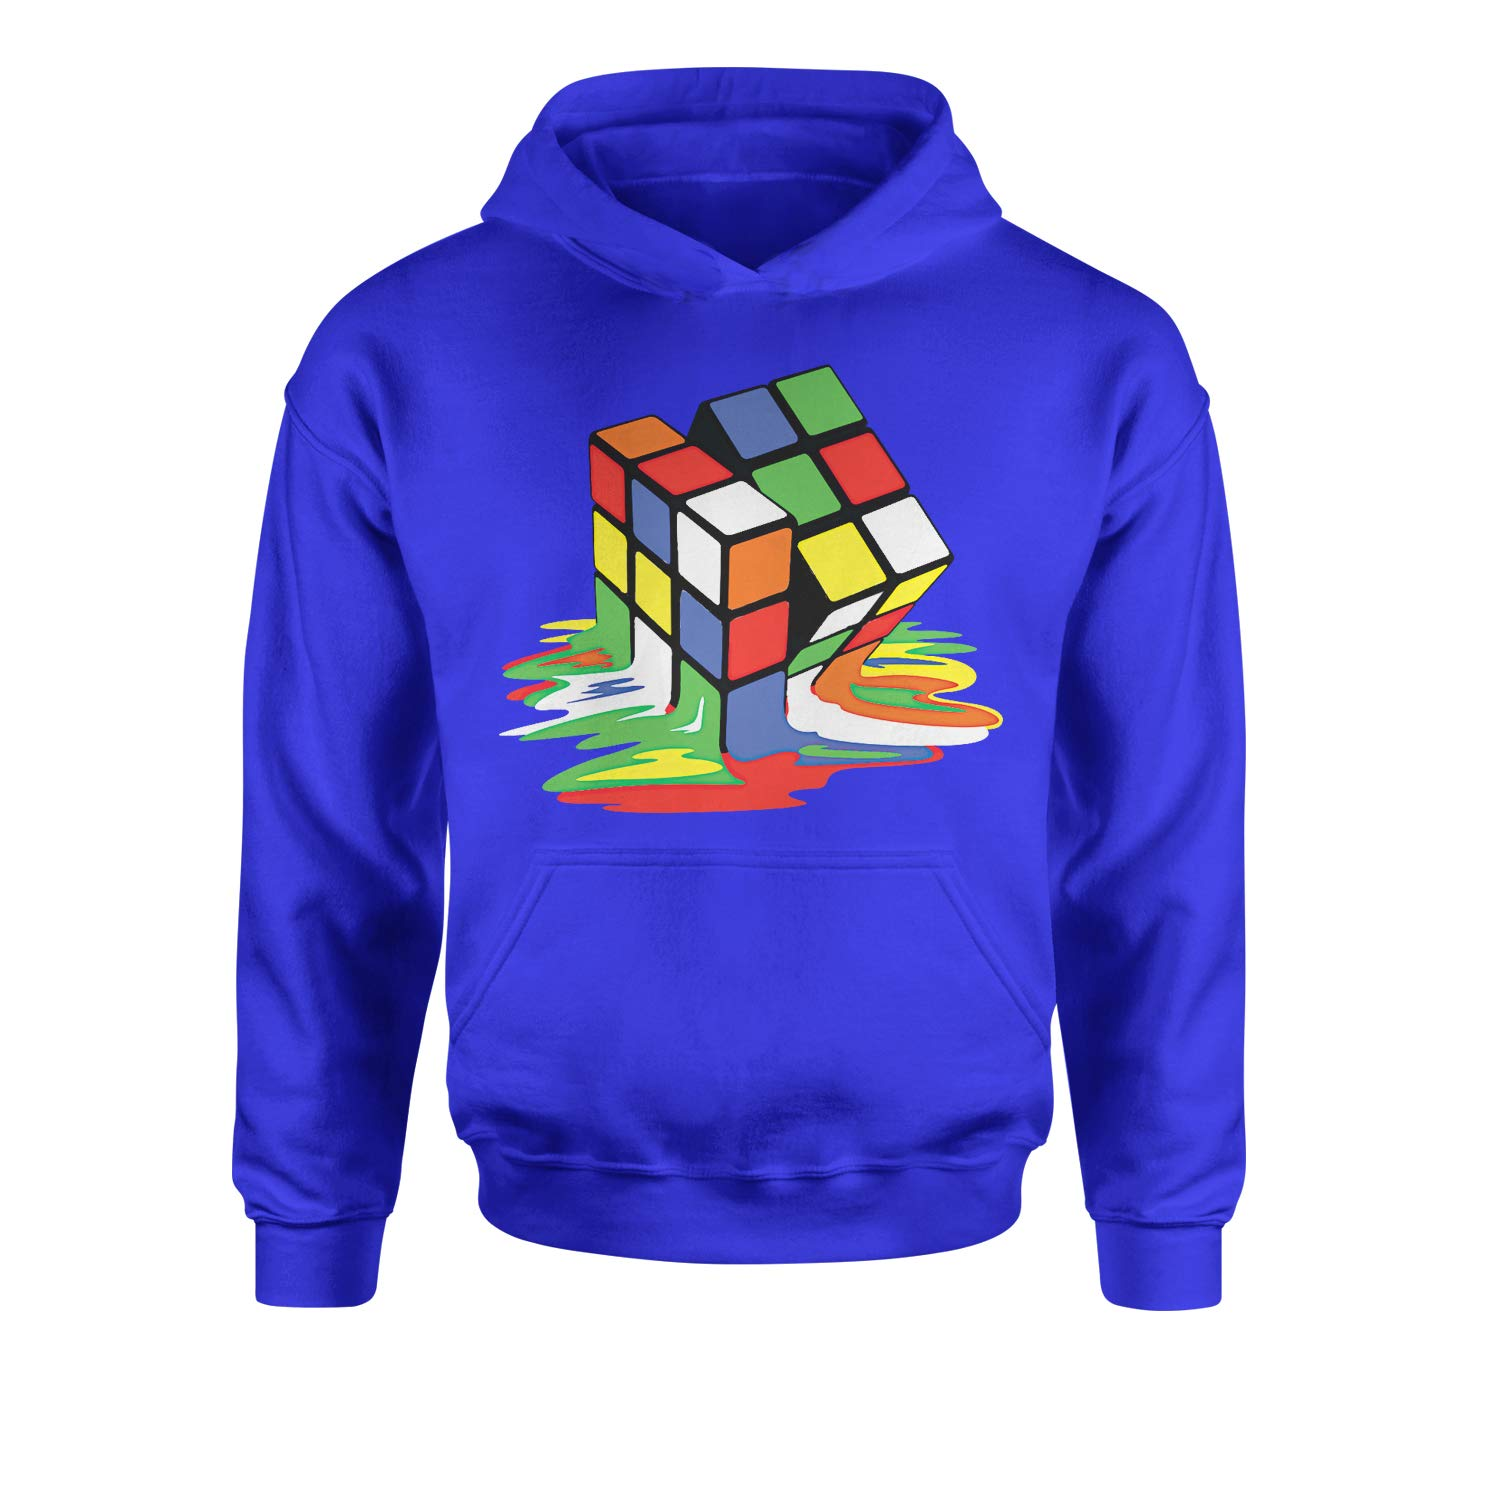 Expression Tees Melting Rubiks Cube Youth-Sized Hoodie